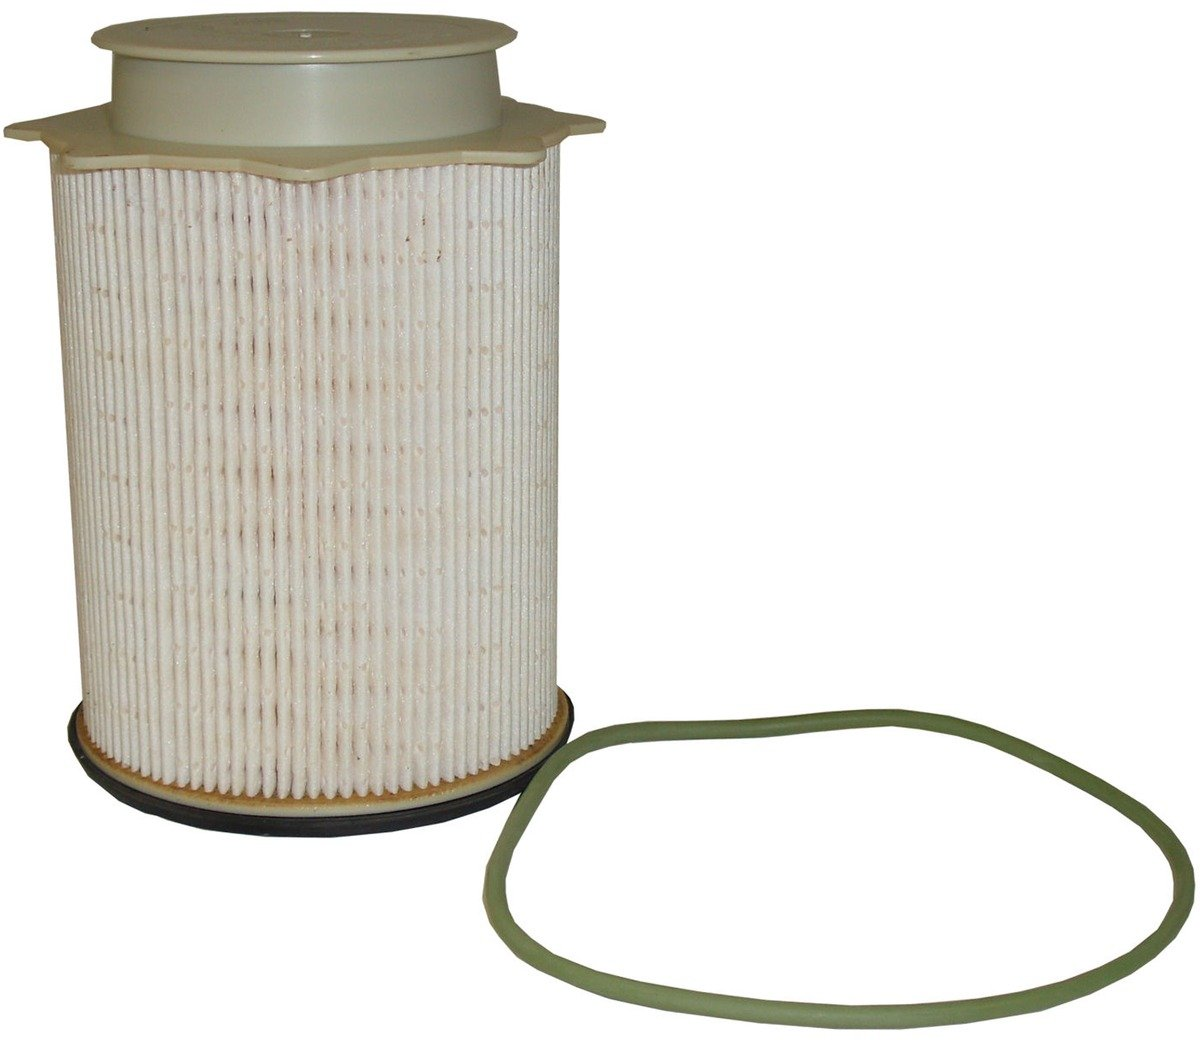 Luber-finer L6806F Heavy Duty Fuel Filter by Luber-finer